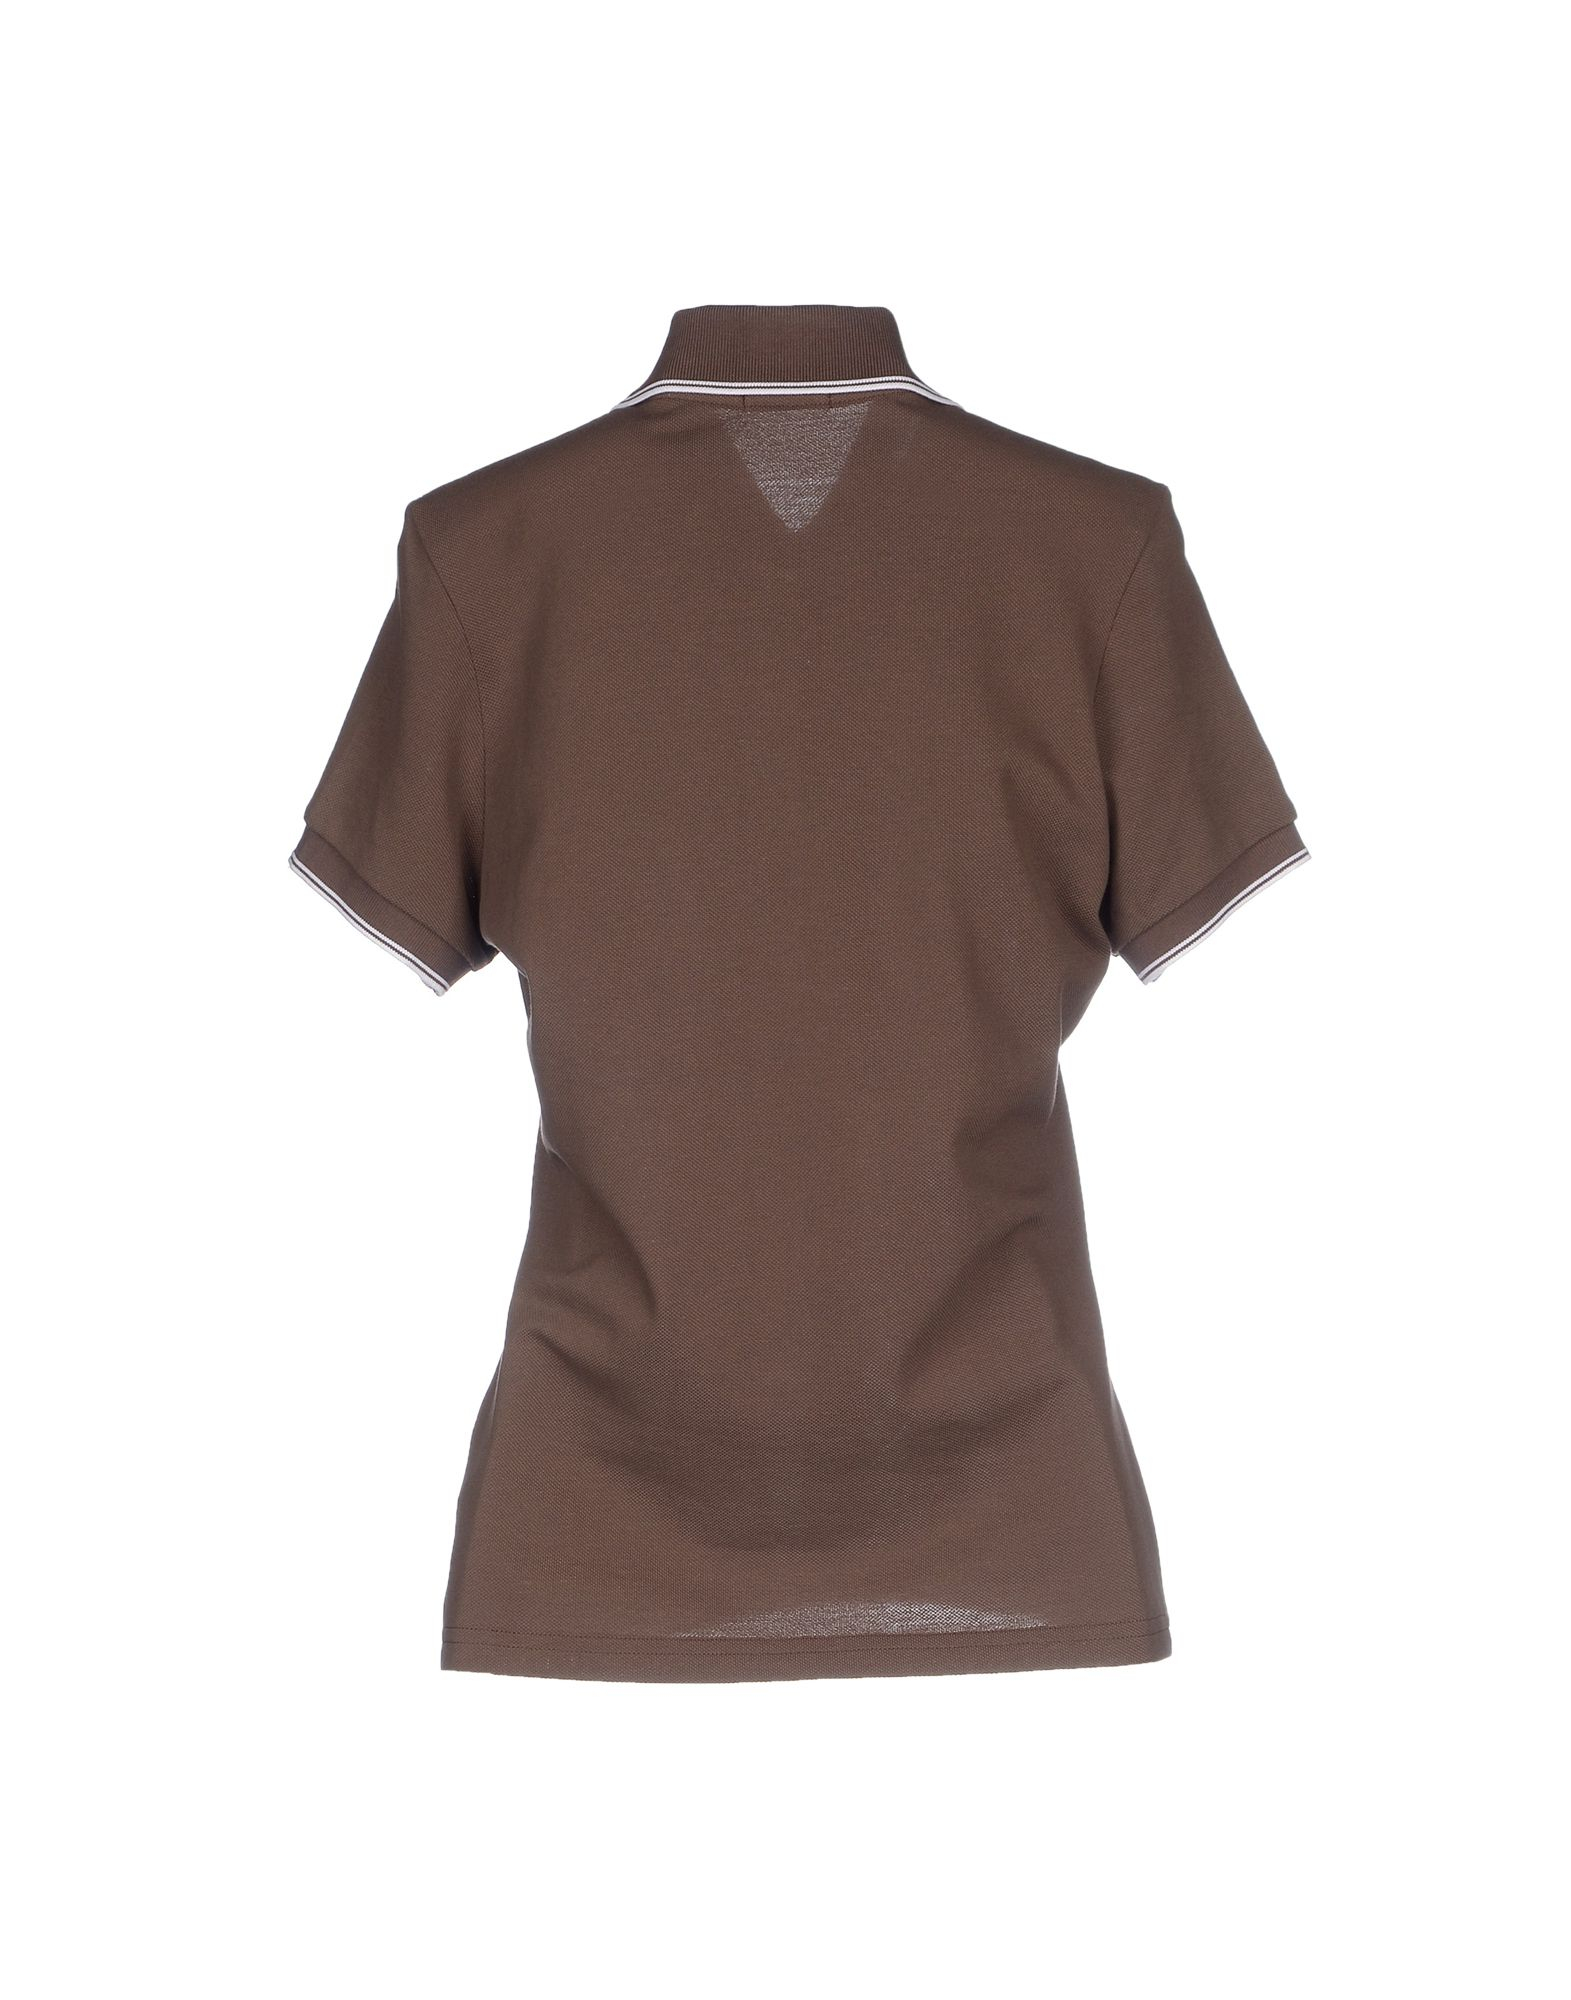 Lyst Colmar Polo Shirt In Brown For Men